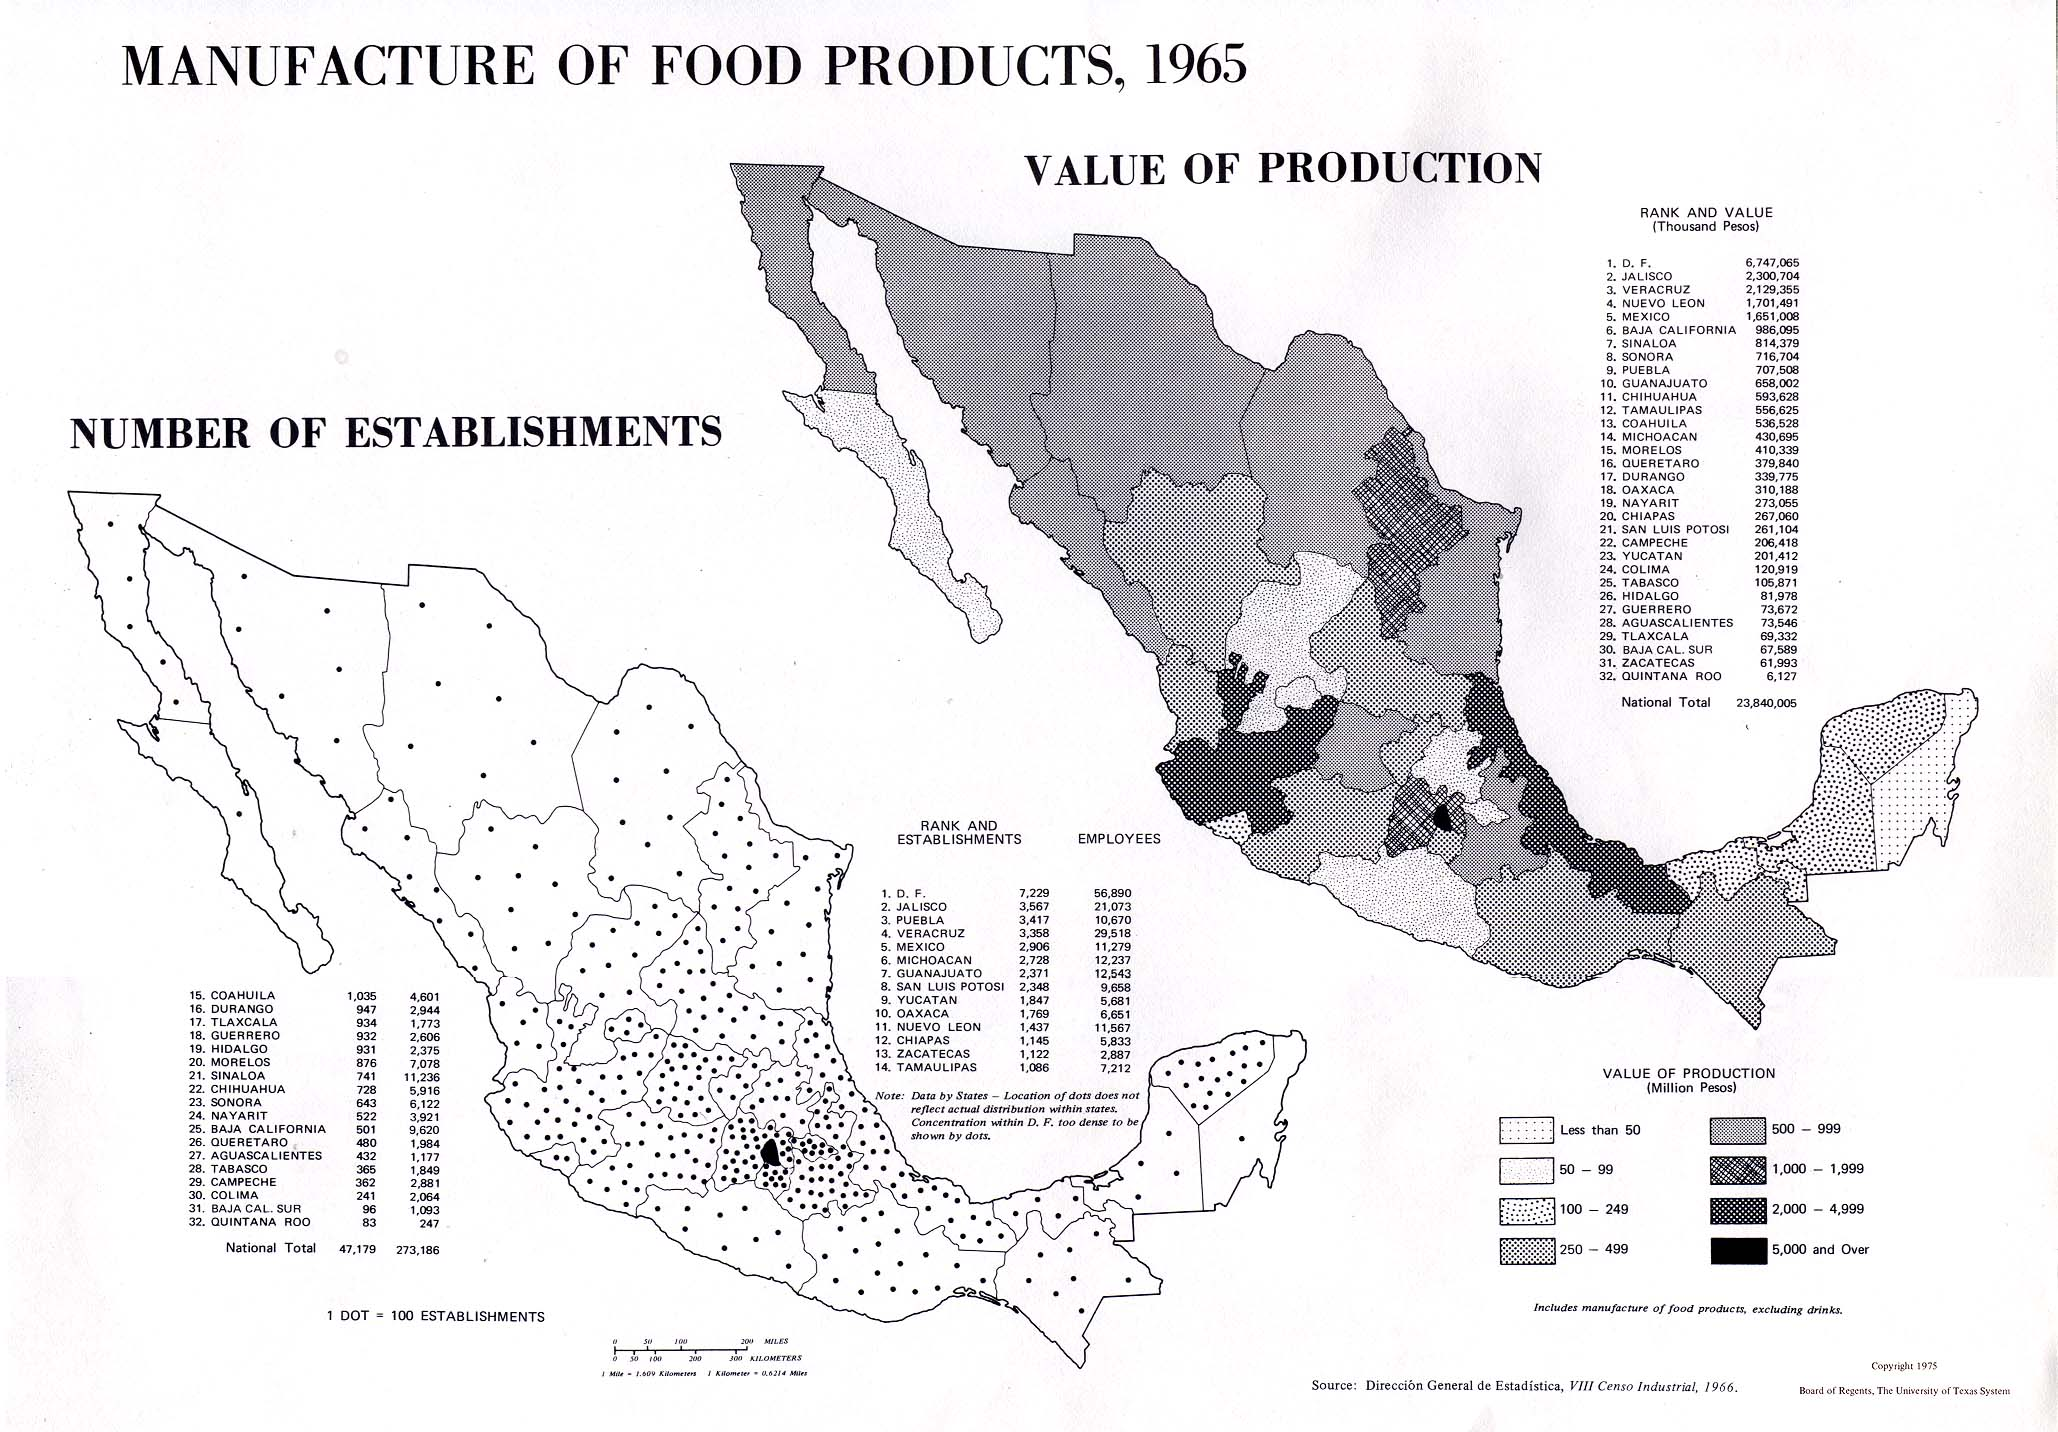 Manufacture of Food Products in Mexico 1965